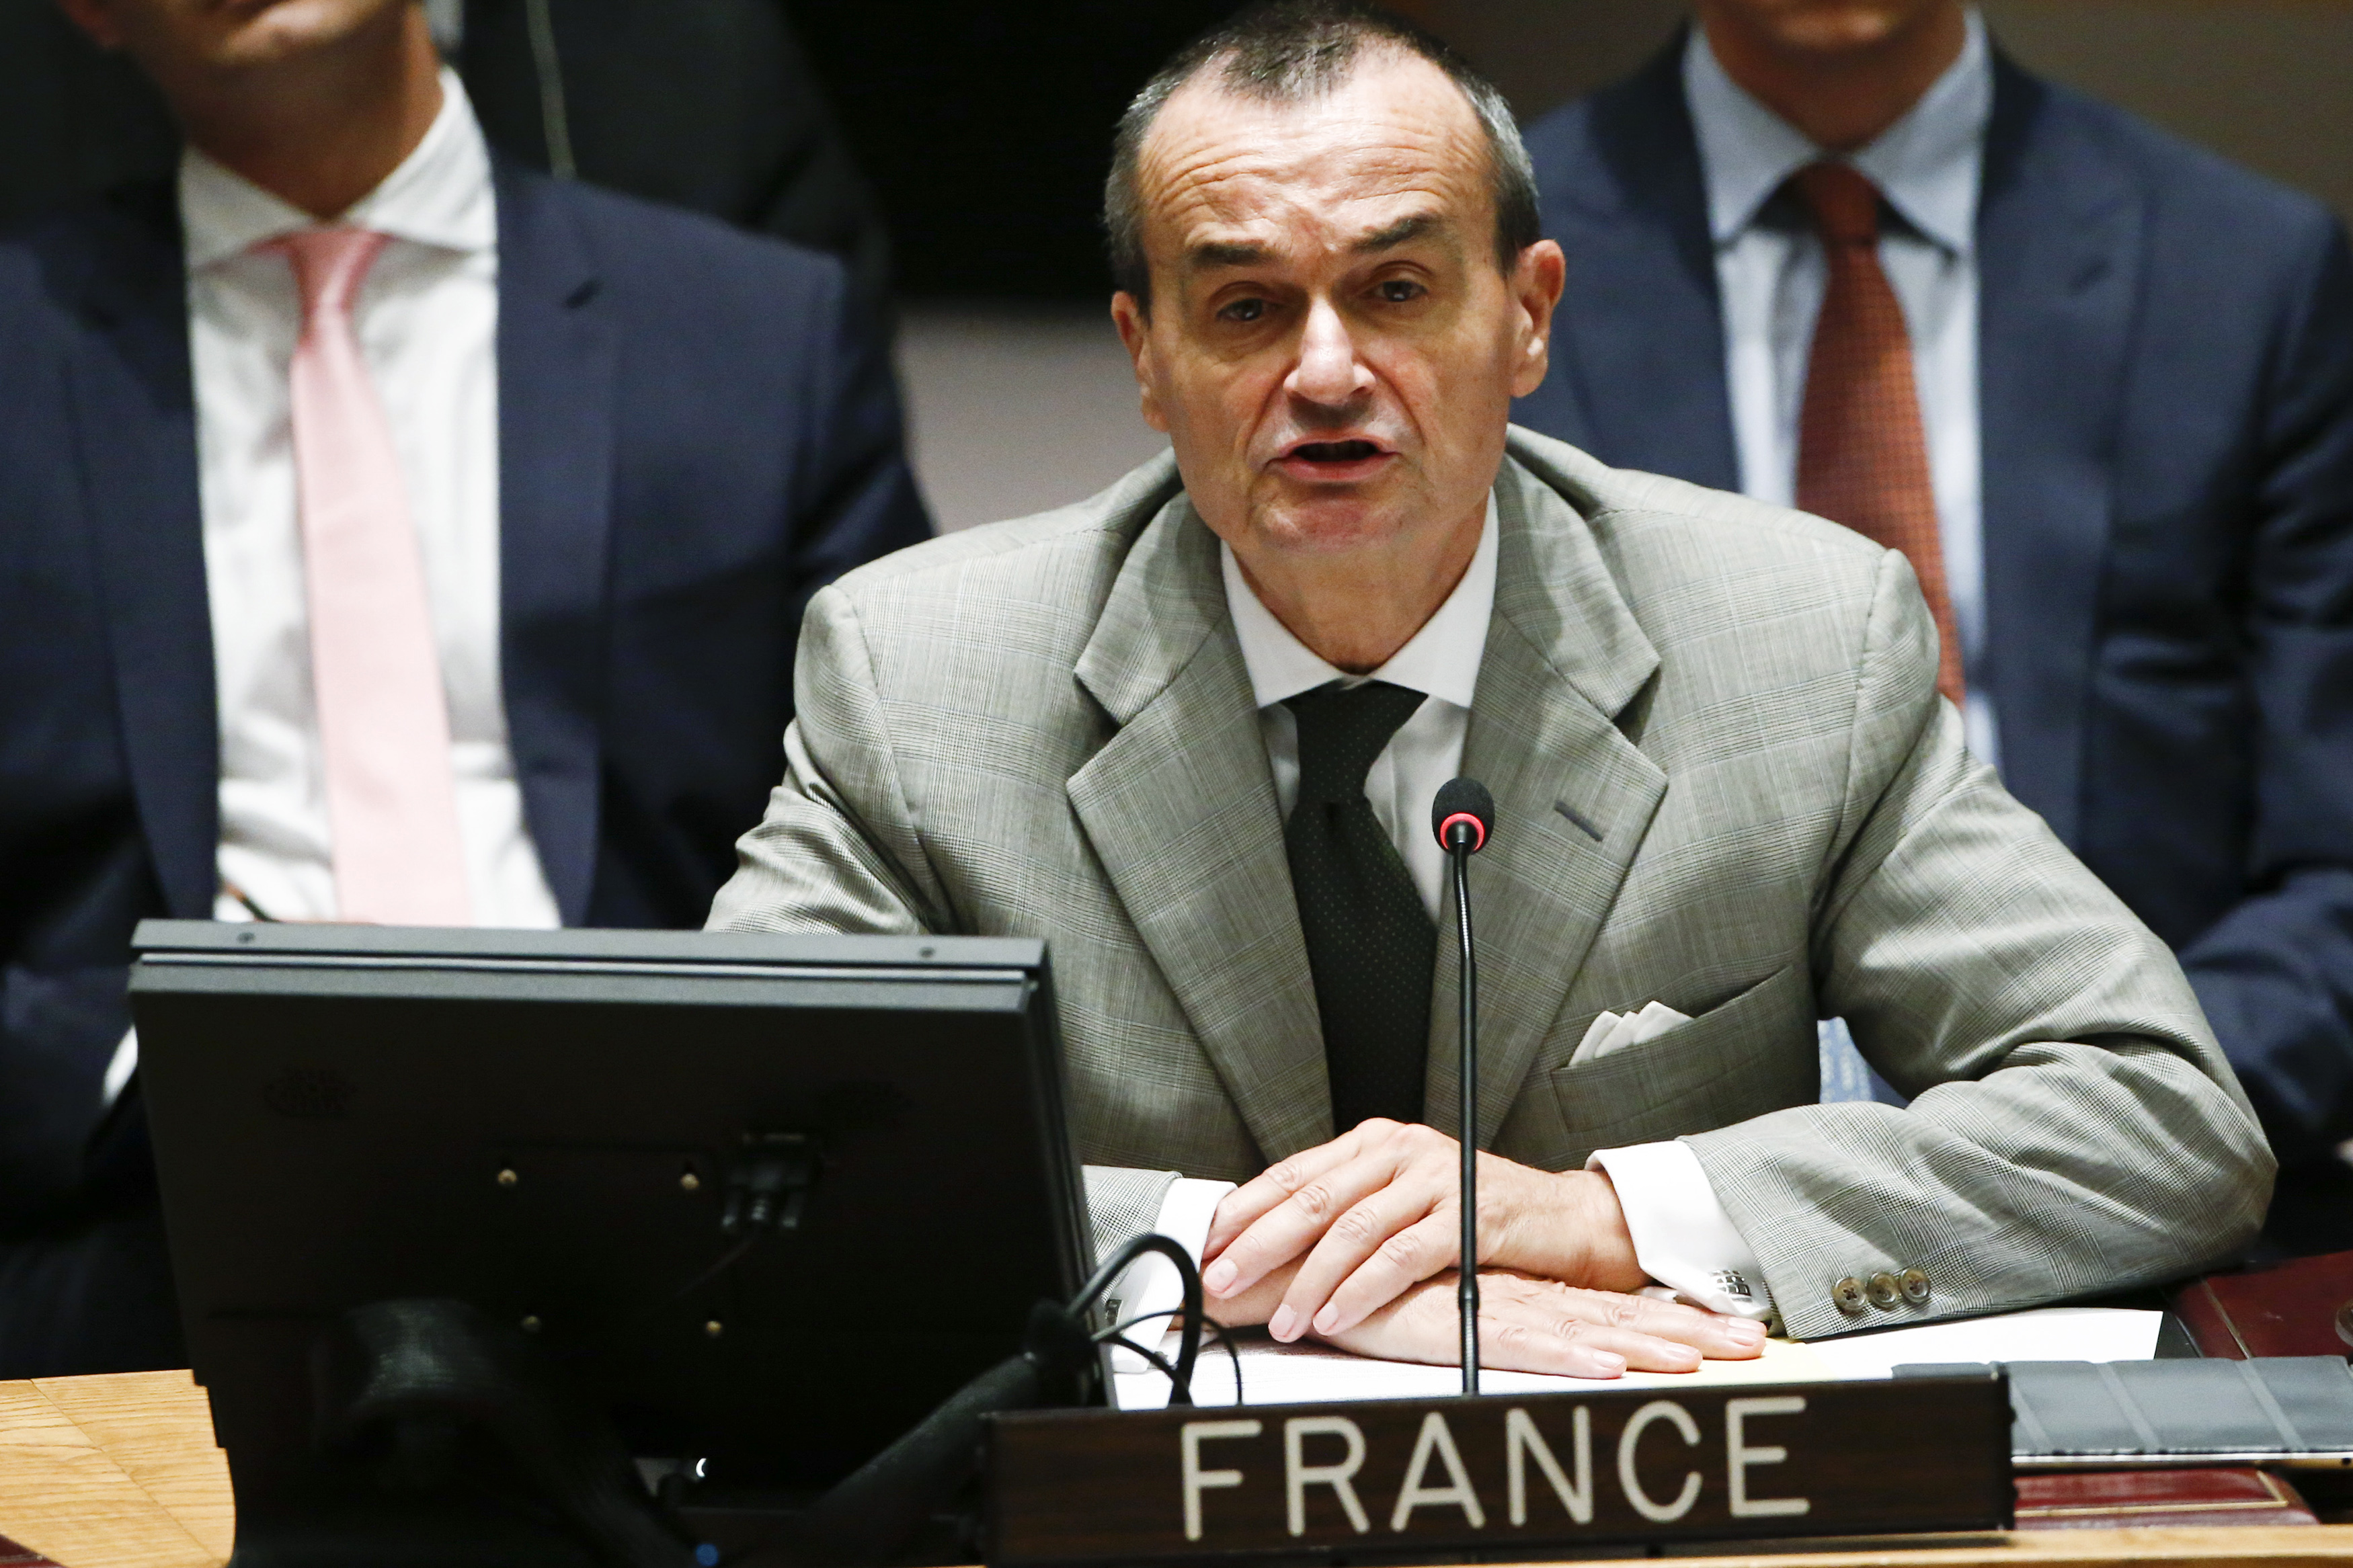 FILE PHOTO: French Ambassador to the U.N. Gerard Araud addresses the Security Council during a meeting about the situation in the Middle East, including Palestine, at United Nations headquarters in New York, July 22, 2014. REUTERS/Eduardo Munoz